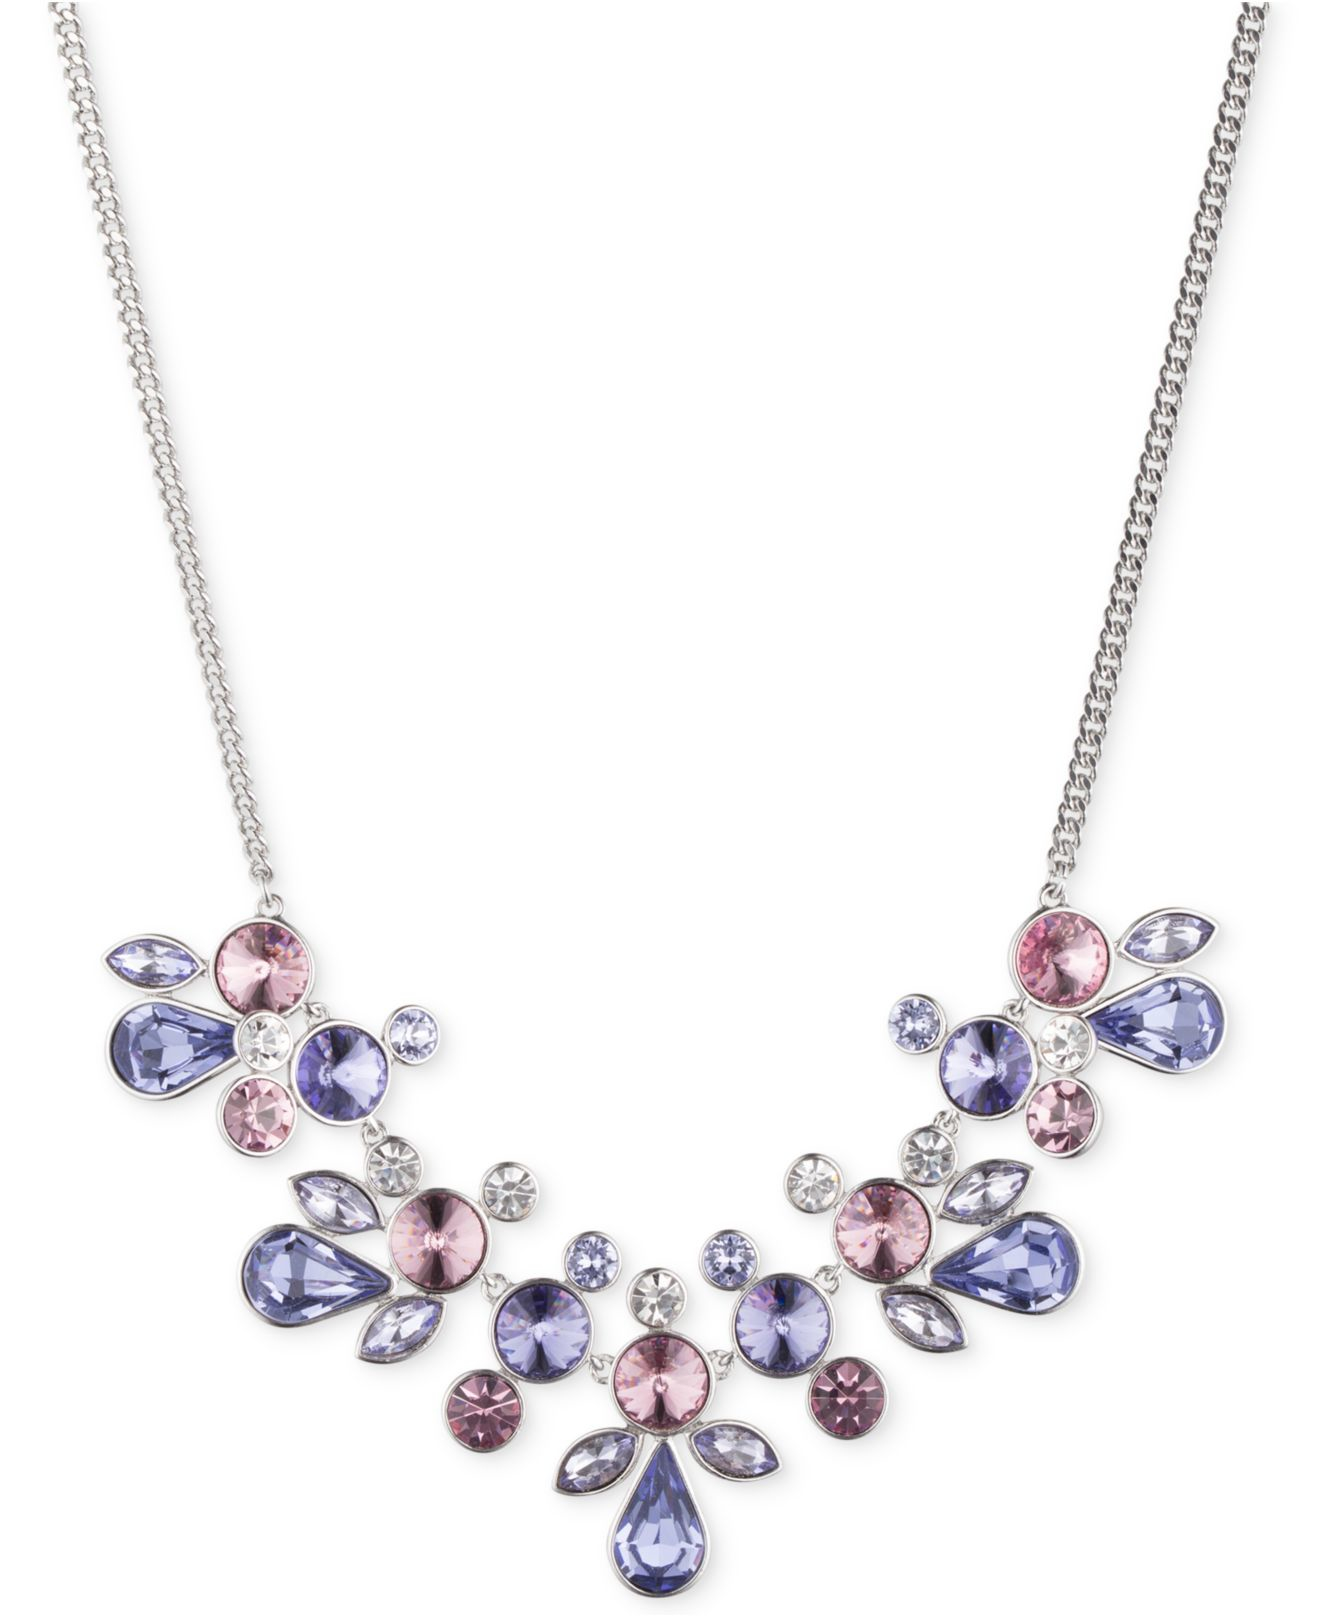 Givenchy Silver Tone Crystal Collar Necklace In Blue Lyst